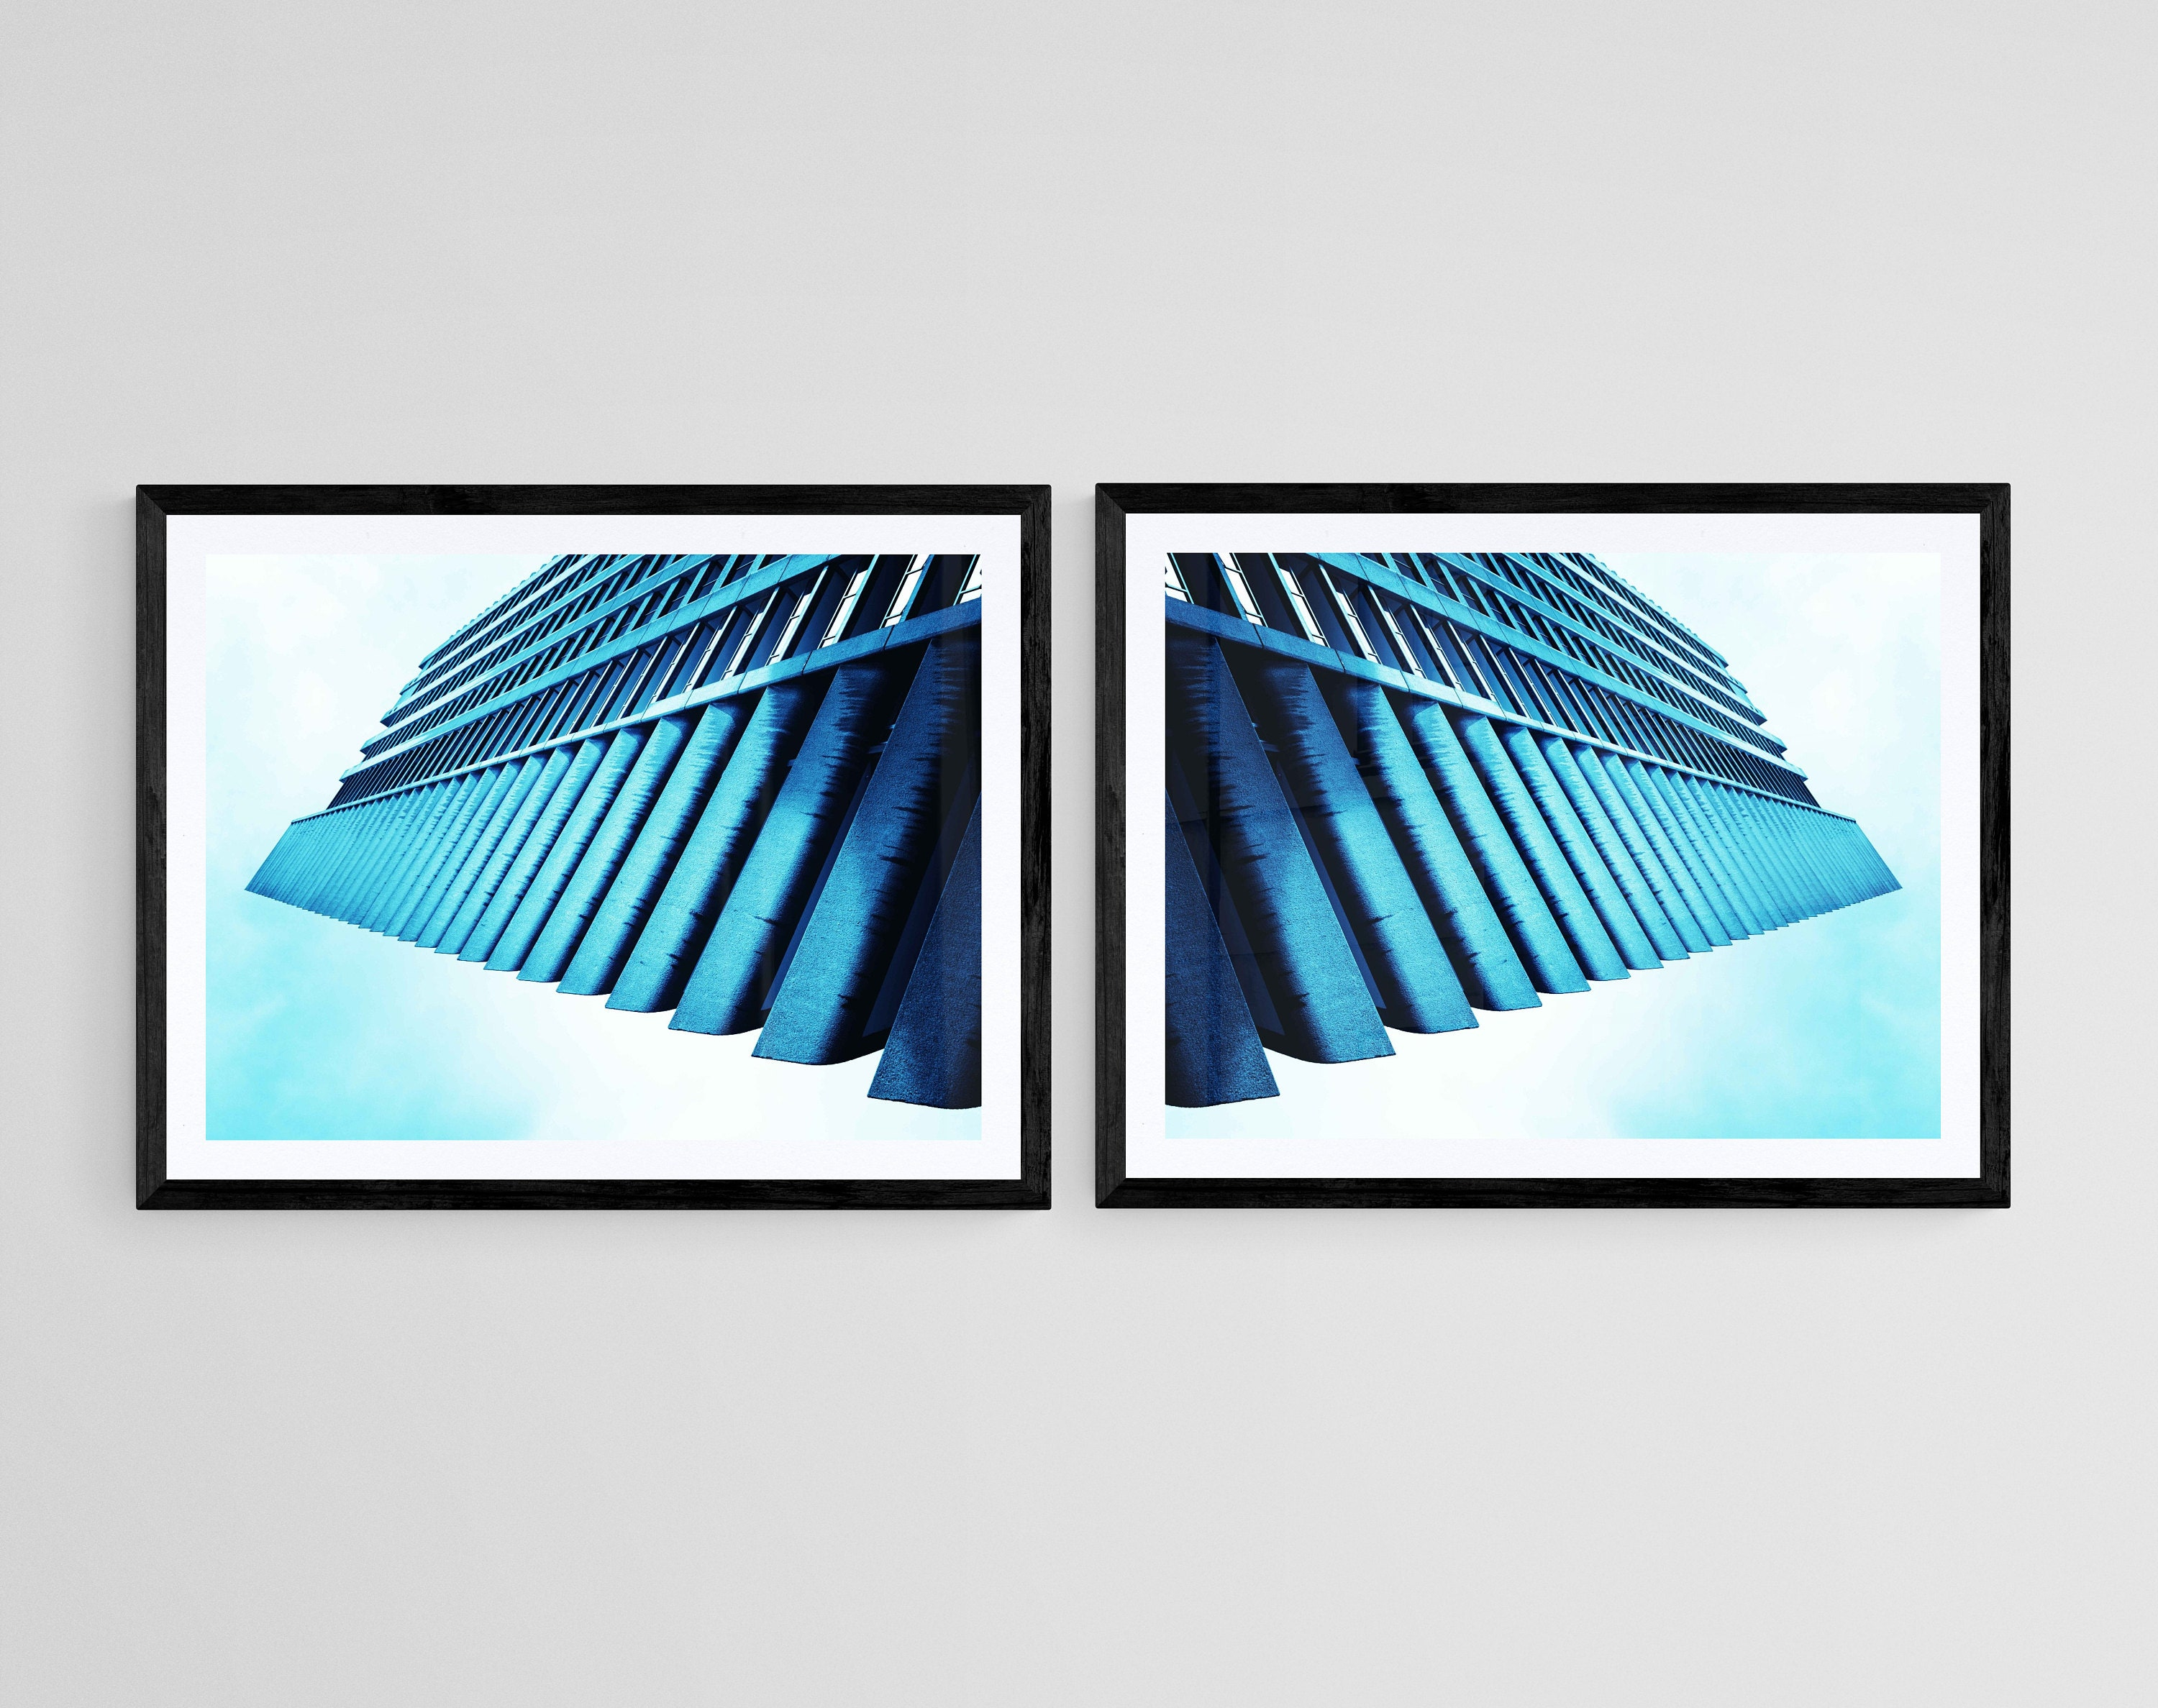 blue london barbican wall art- fine art photography of the barbican turned into abstract contemporary wall art in various sizes- available as a diptych- installation of two artworks, unframed or ready to hang art